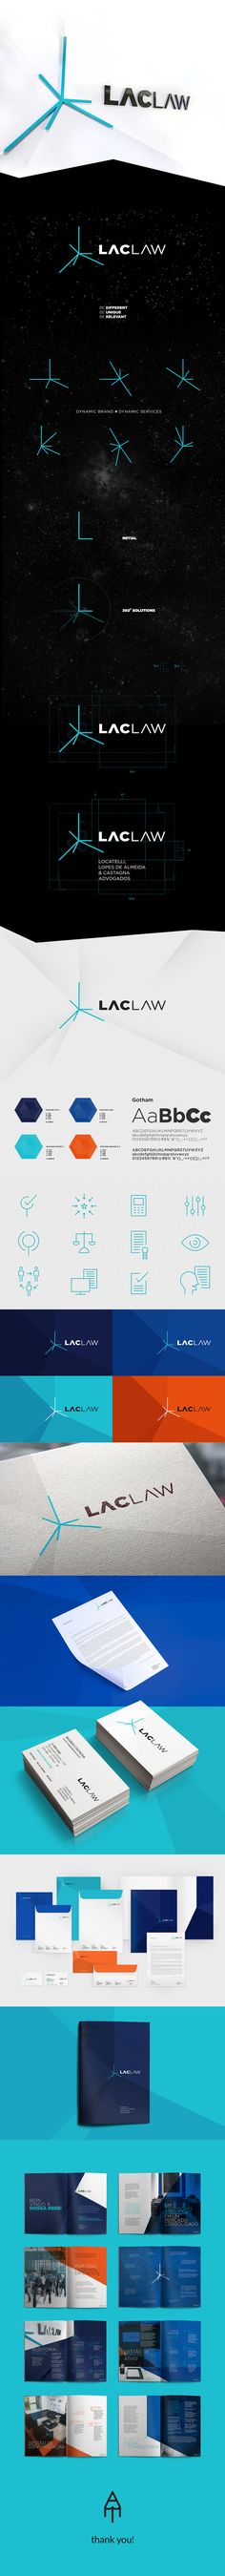 LACLAW on Behance